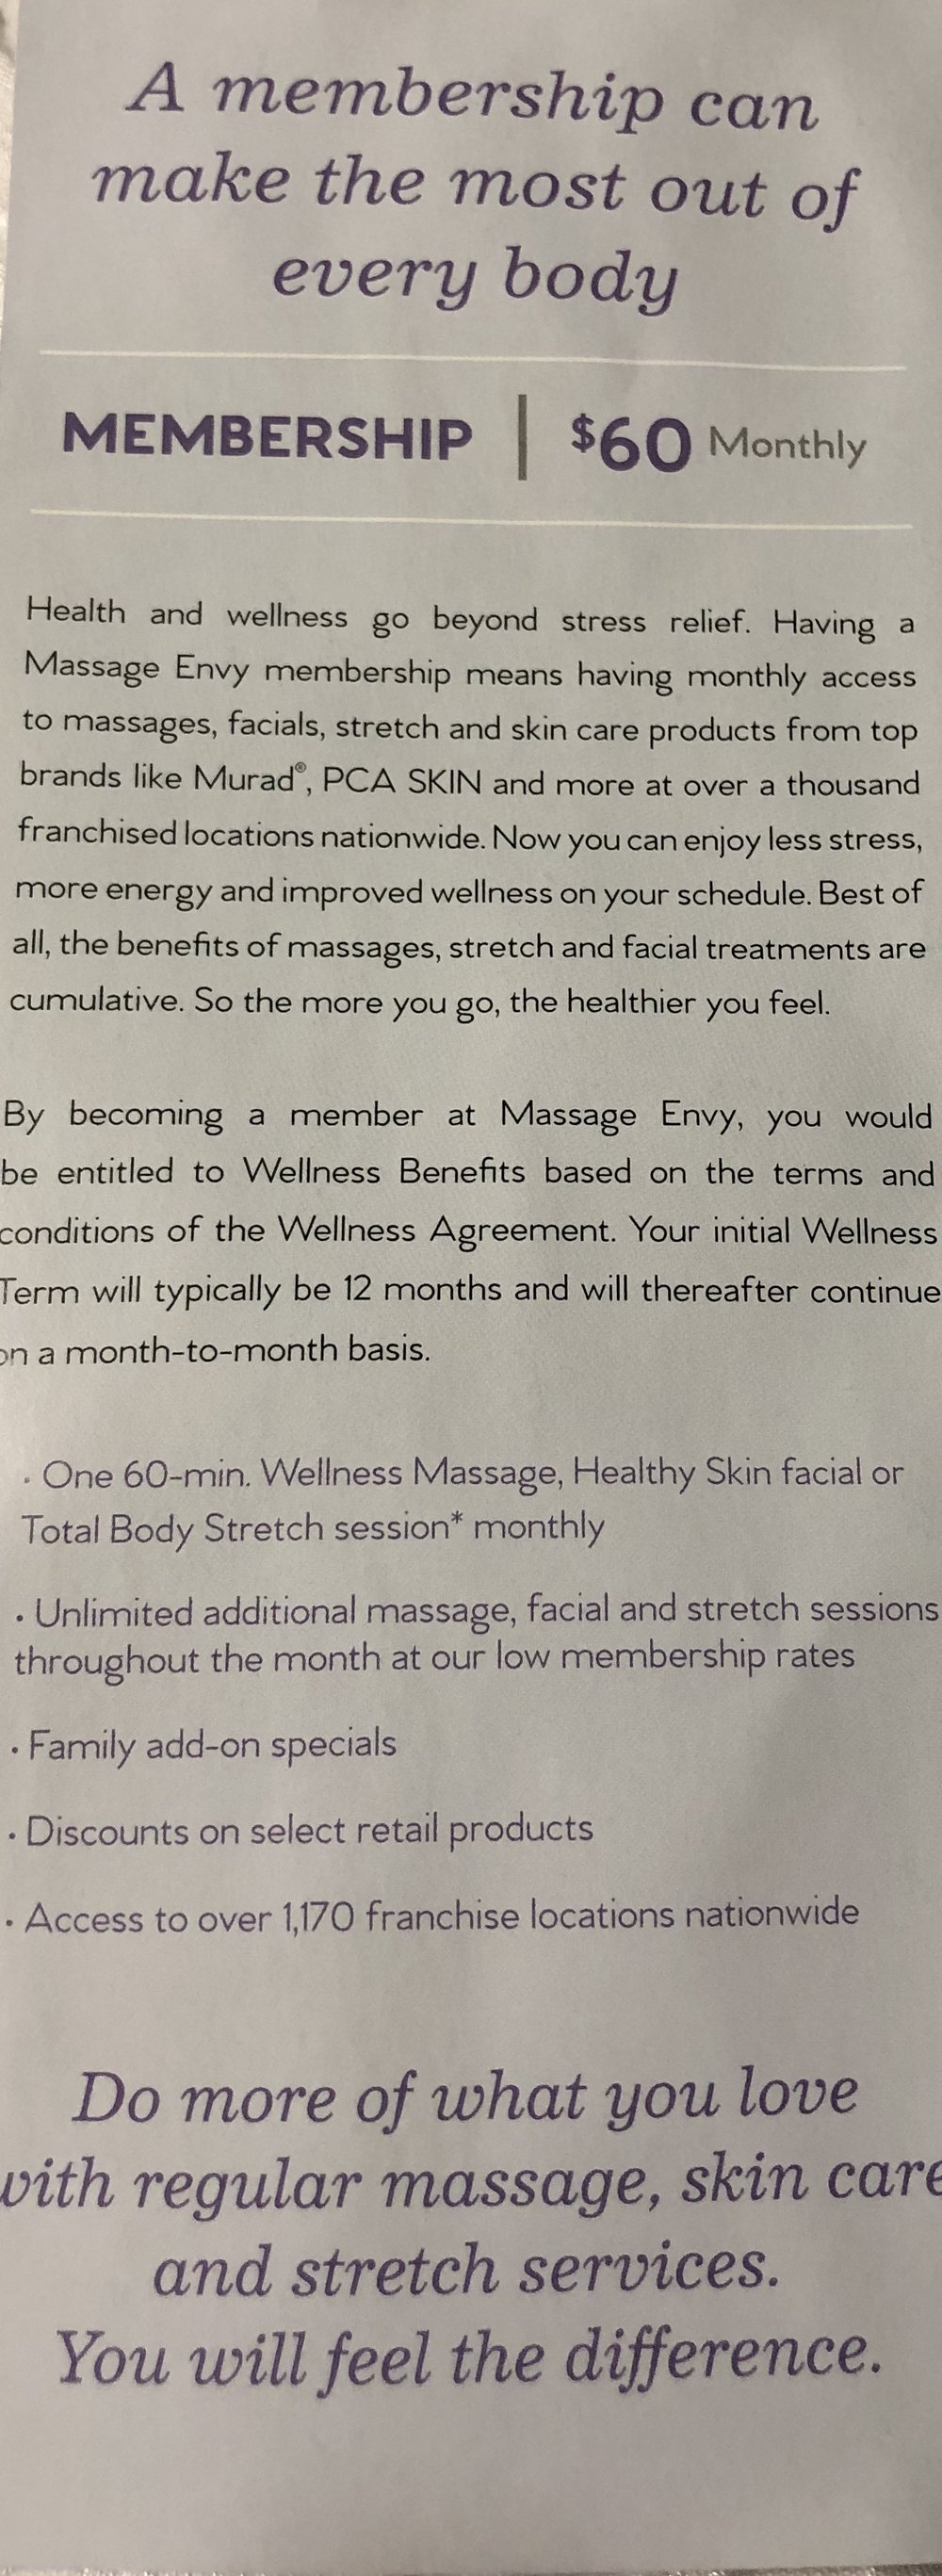 Additional Membership Details